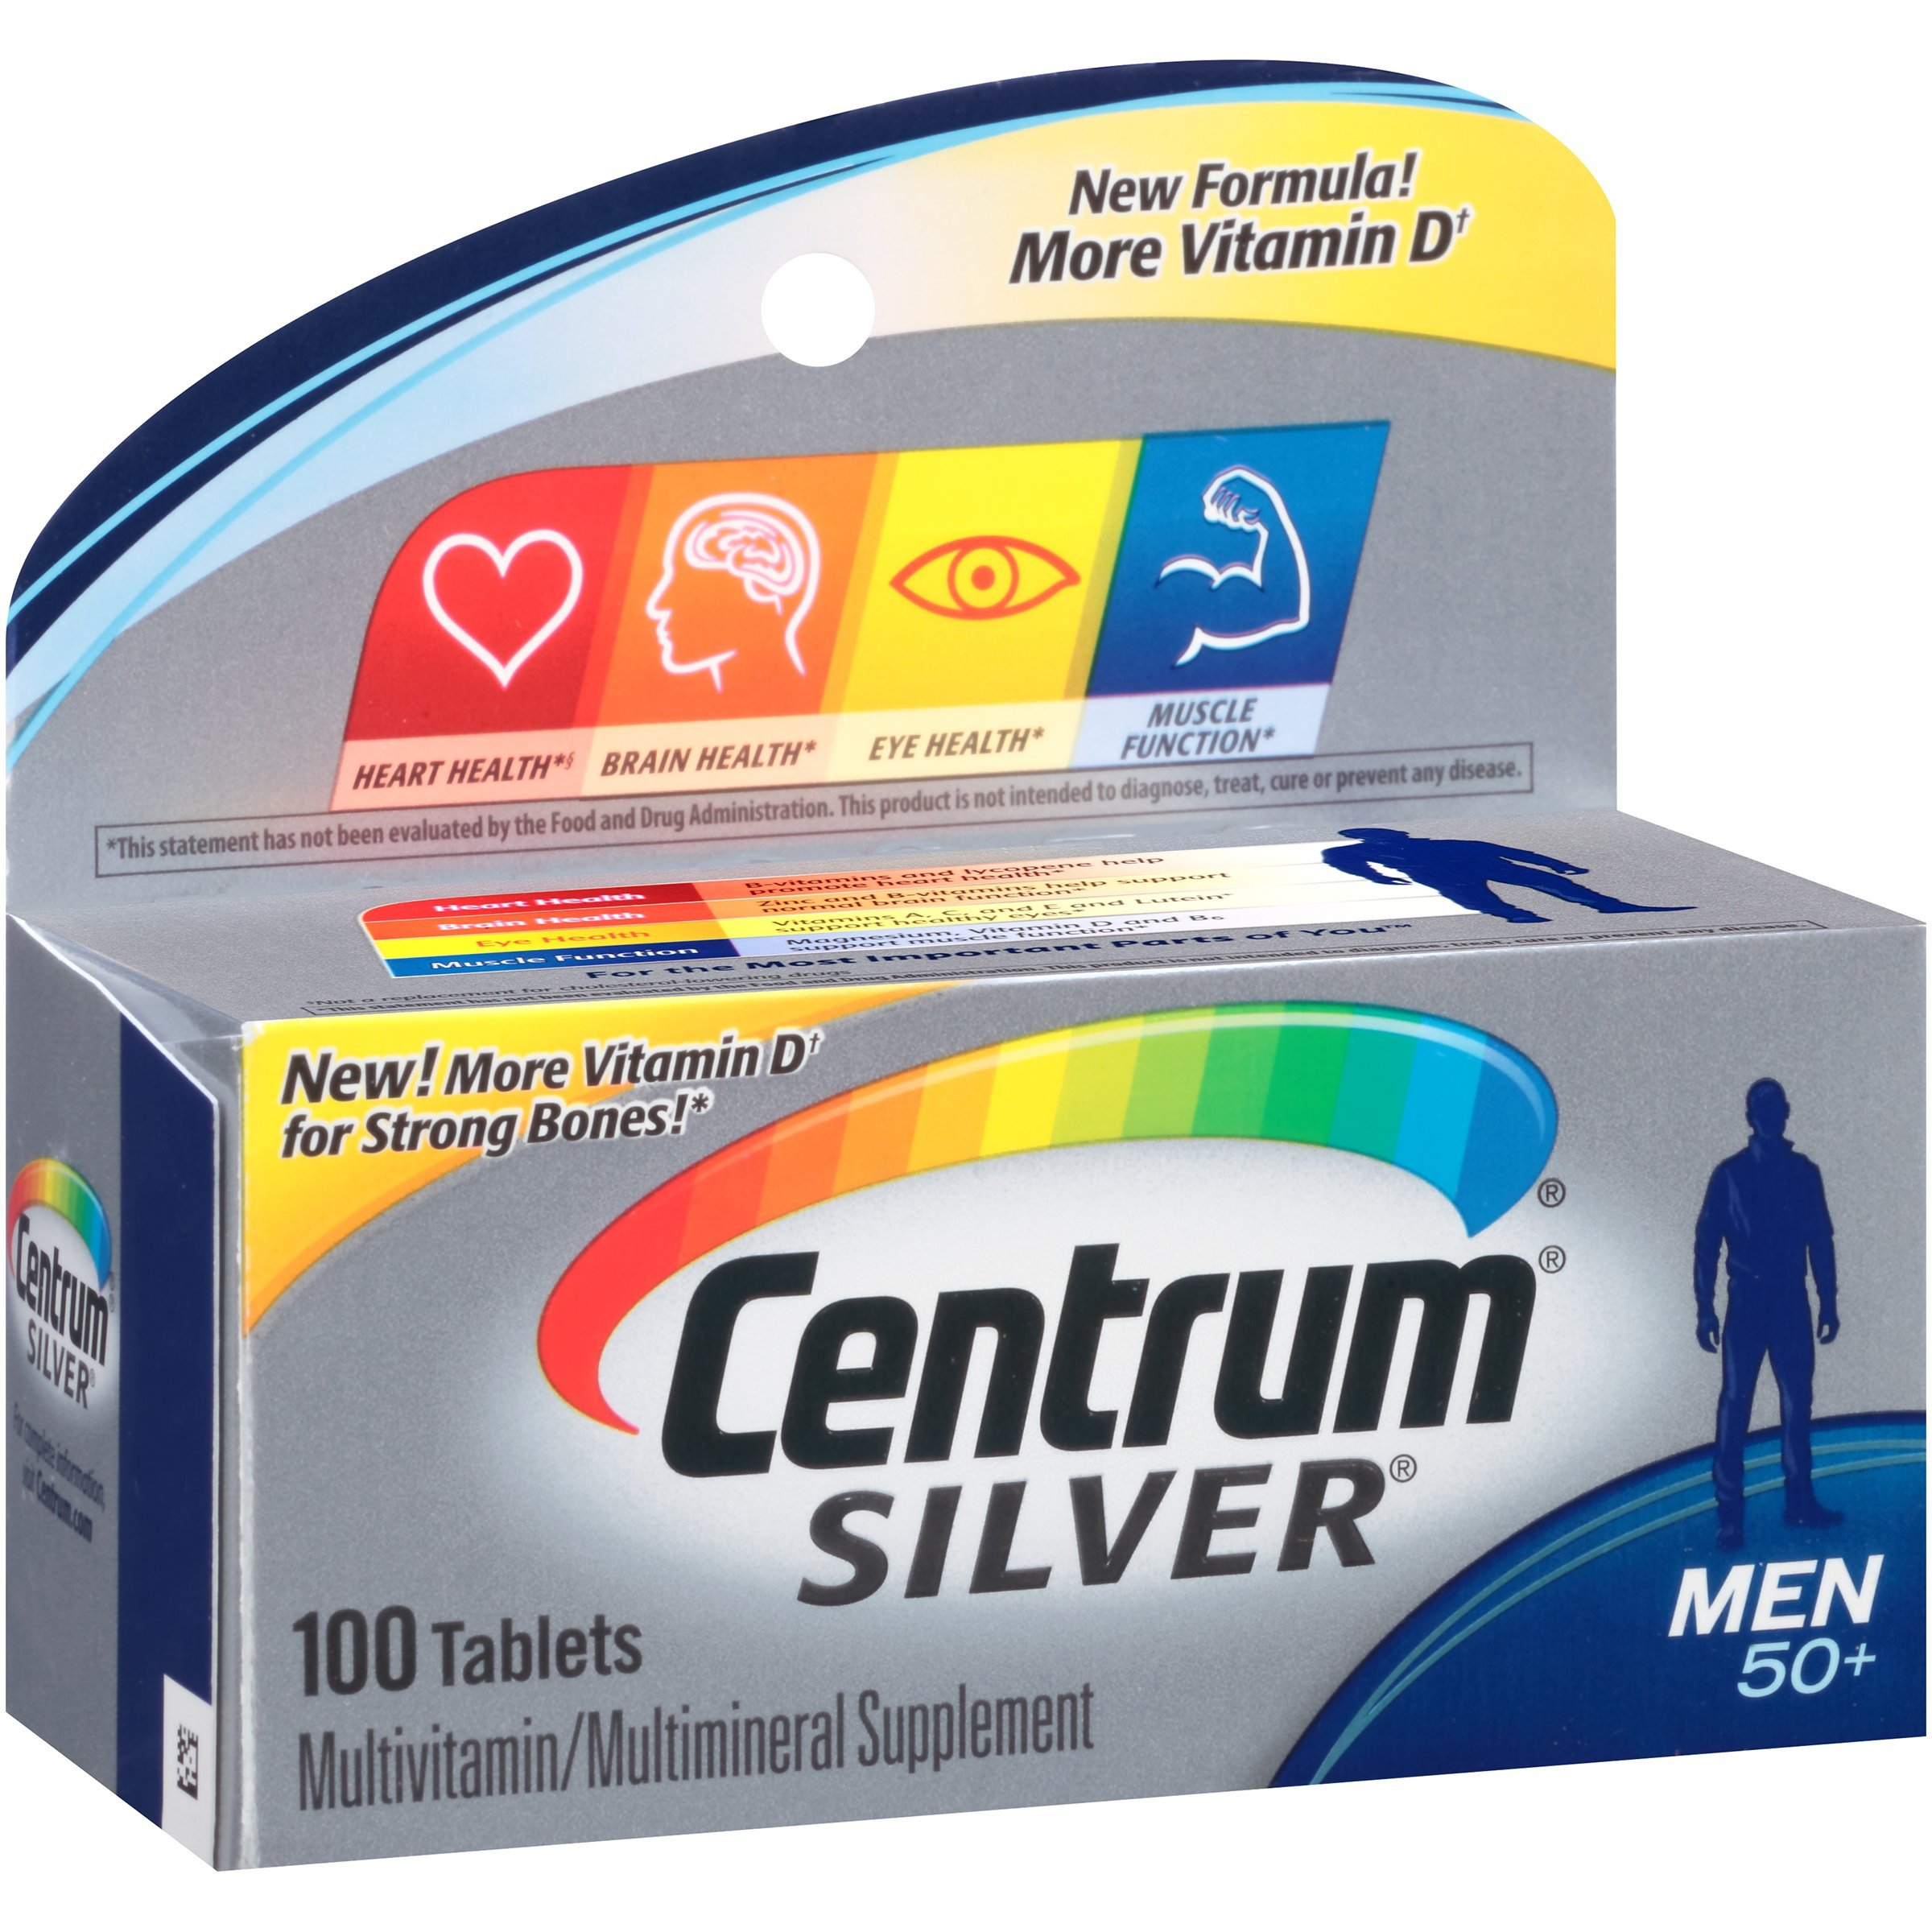 Centrum Silver Men (100 Count) Multivitamin/Multimineral Supplement Tablet, Vitamin D3, Age 50+